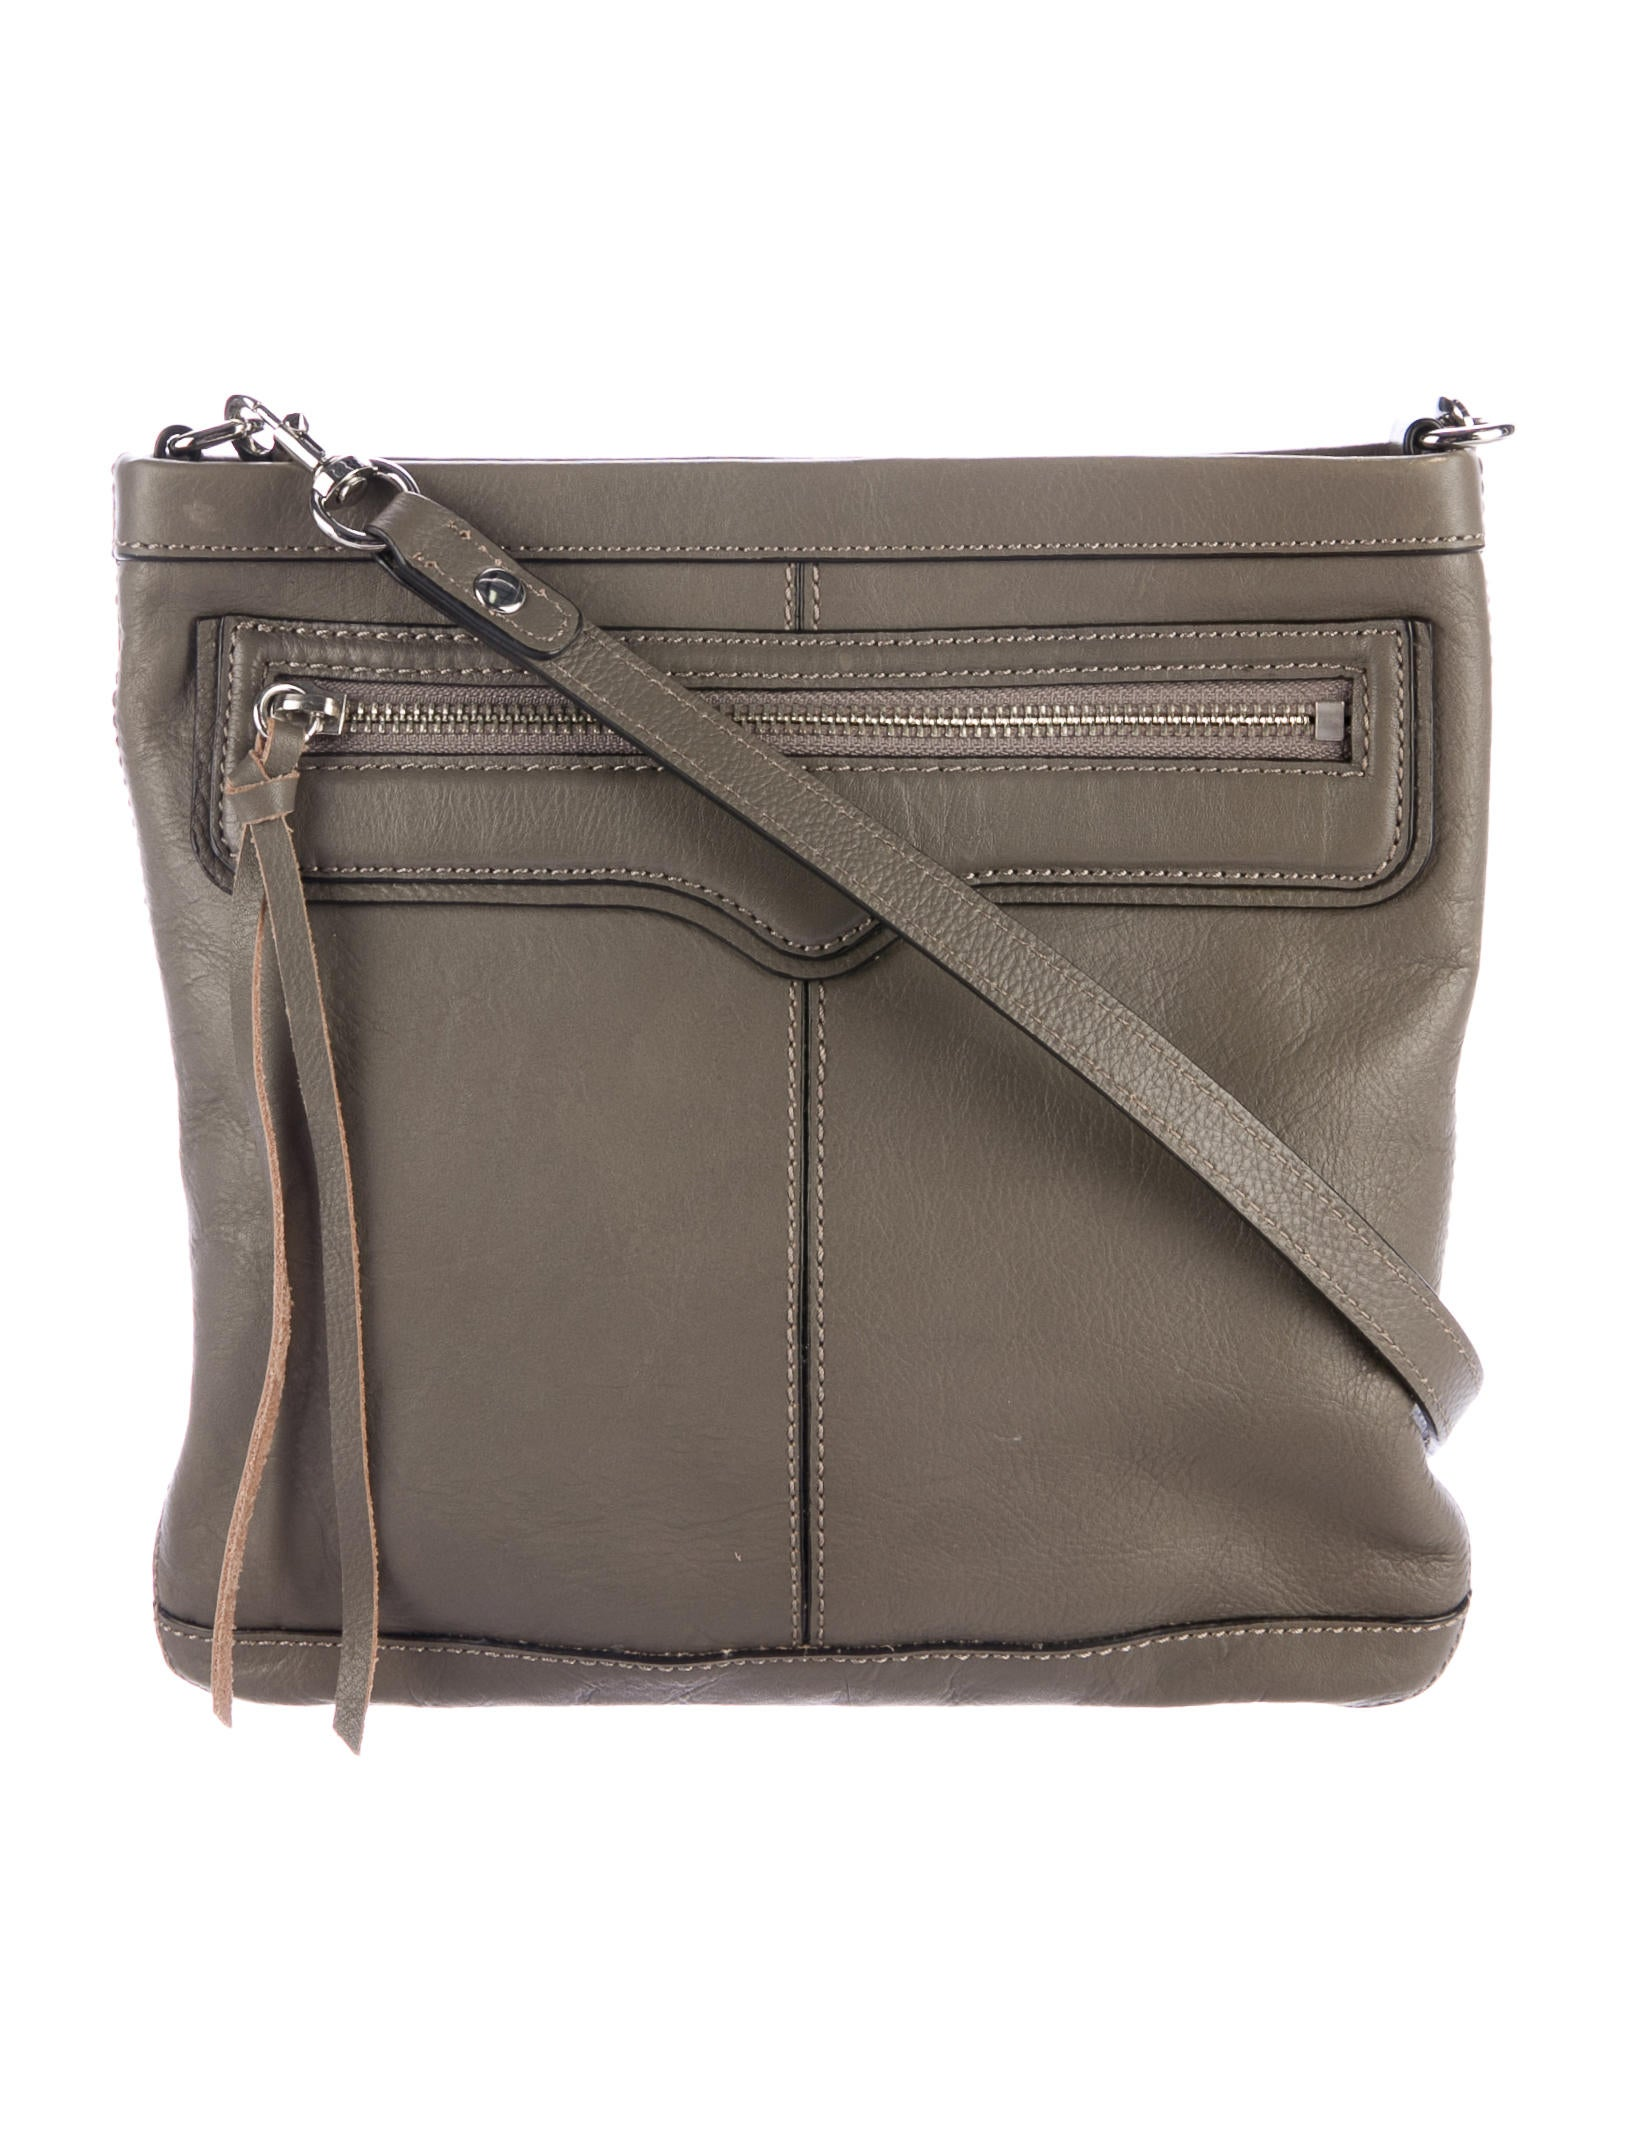 Triple Zip Crossbody Bag. Average rating: 0 out of 5 stars, based on 0 reviews Write a review. Design Lab. This button opens a dialog that displays additional images for this product with the option to zoom in or out. Tell us if something is incorrect. Back. Design Lab. Triple Zip Crossbody Bag.